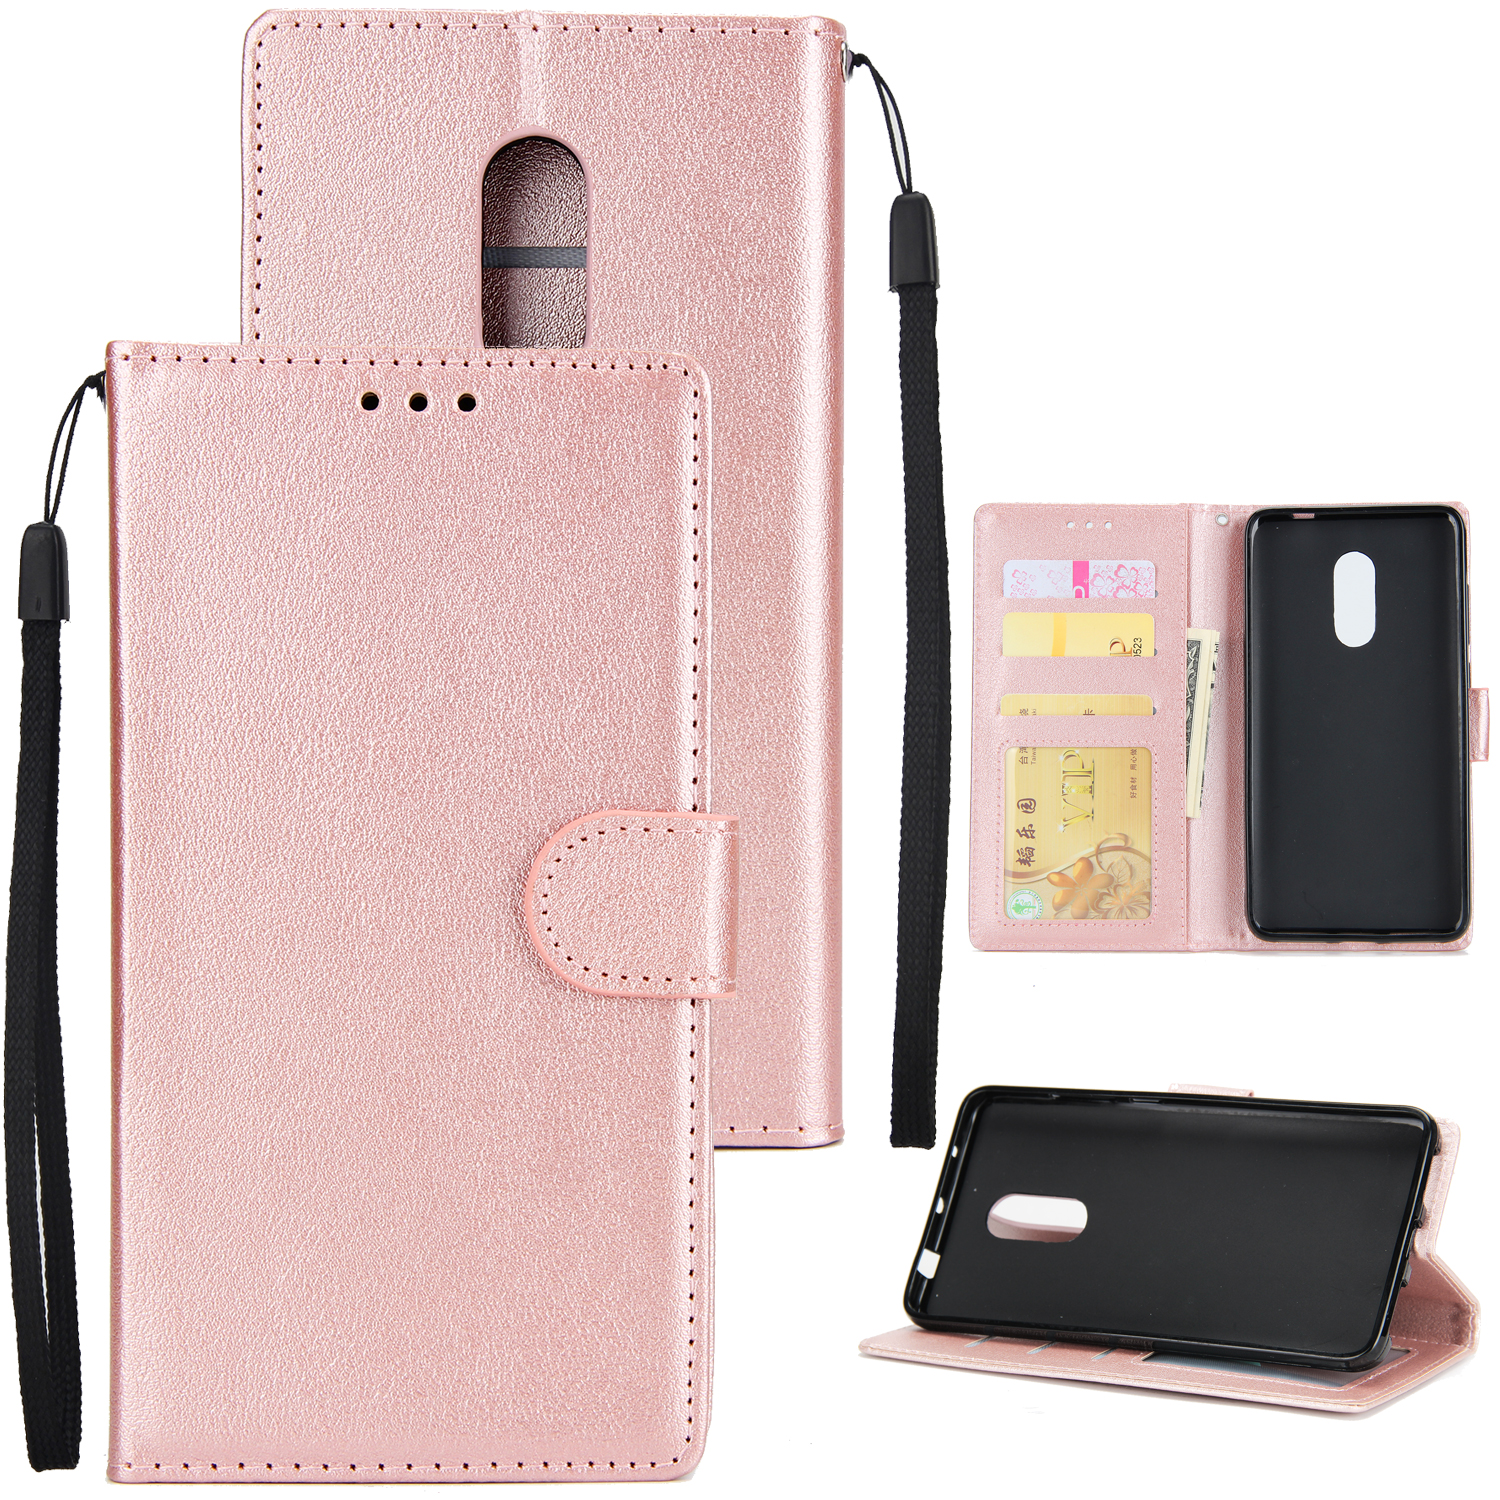 Ultra Slim PU Full Protective Cover Non-slip Shockproof Cell Phone Case with Card Slot for Xiaomi Redmi note 4 Rose gold